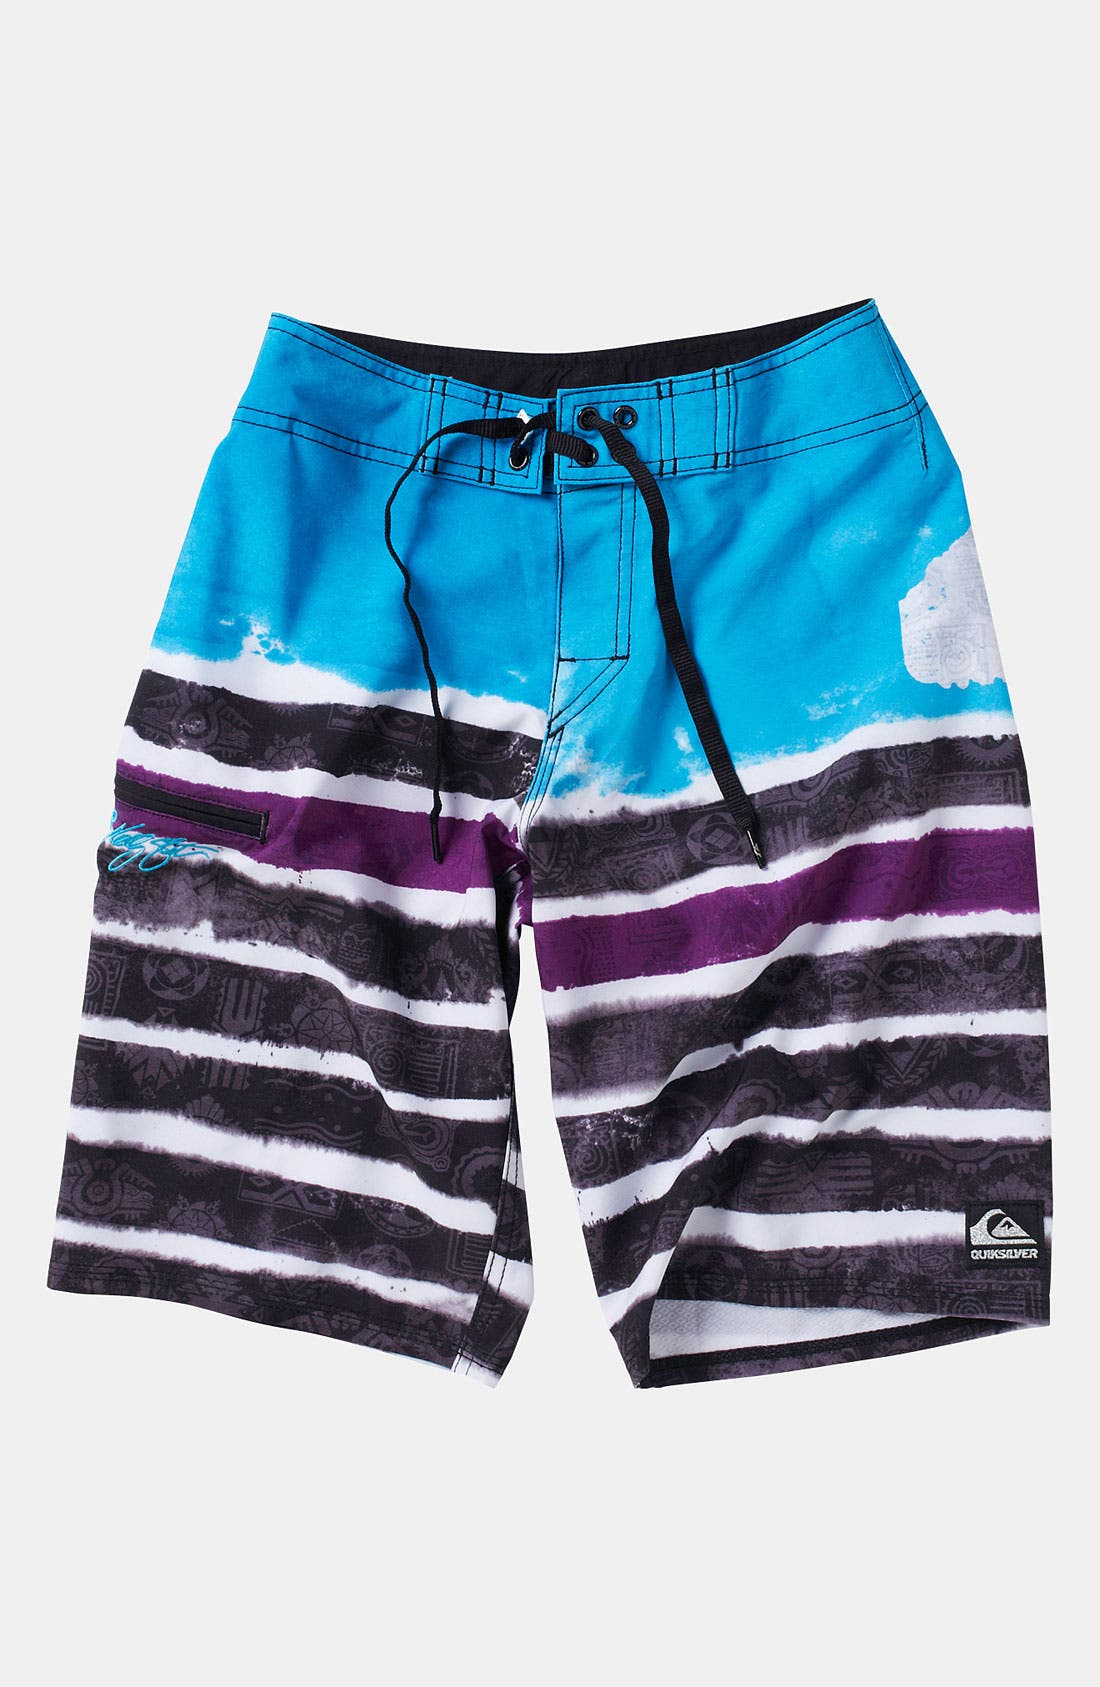 Alternate Image 1 Selected - Quiksilver 'Cypher Kelly' Board Shorts (Toddler)